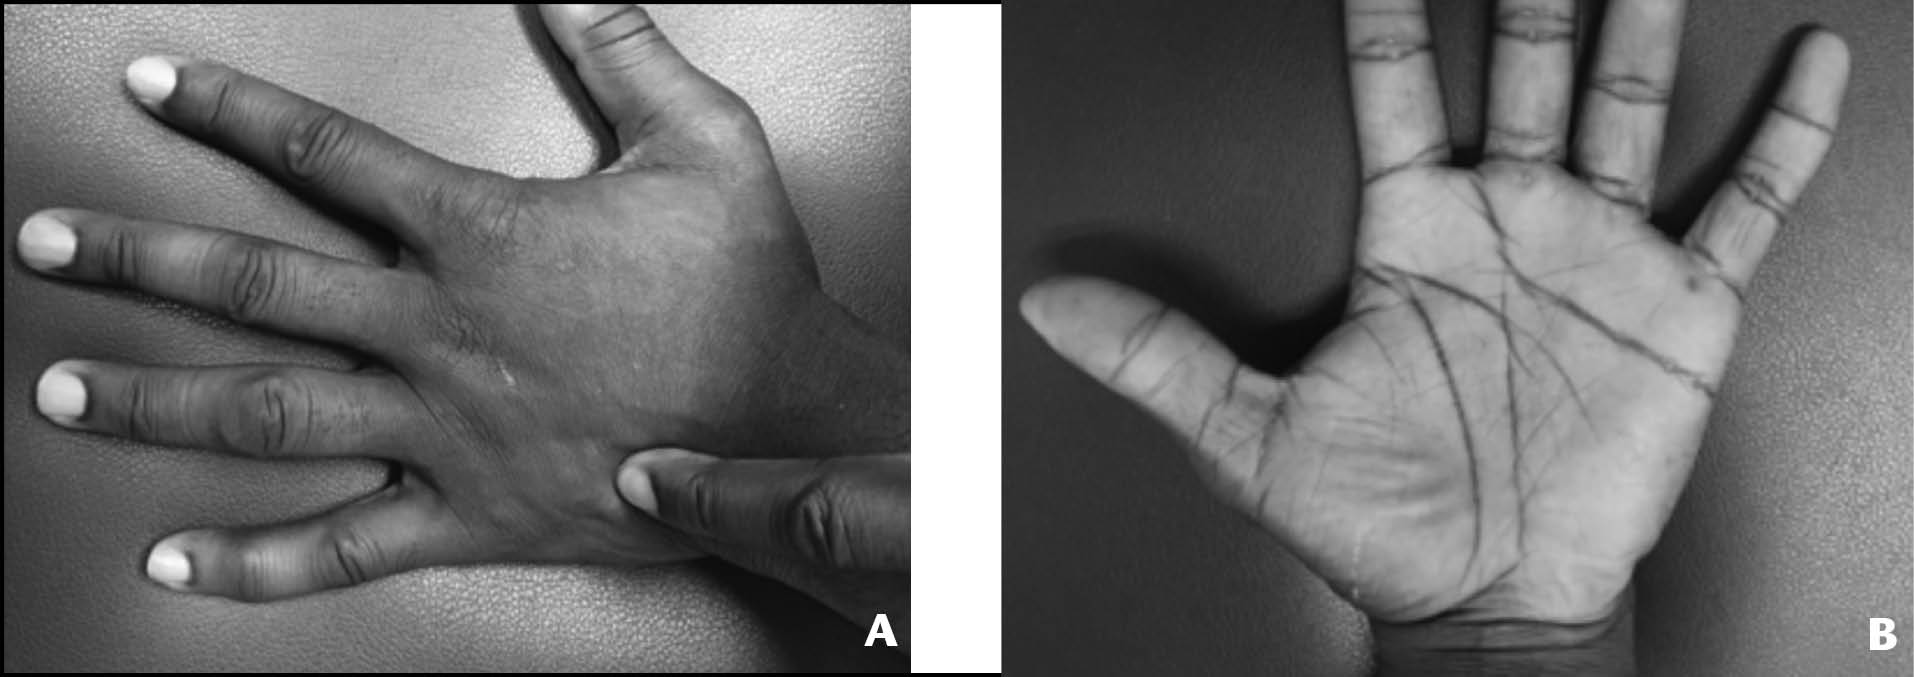 Clinical photograph of case 2 identifying (A) the point of maximal tenderness and (B) palmar ecchymosis.